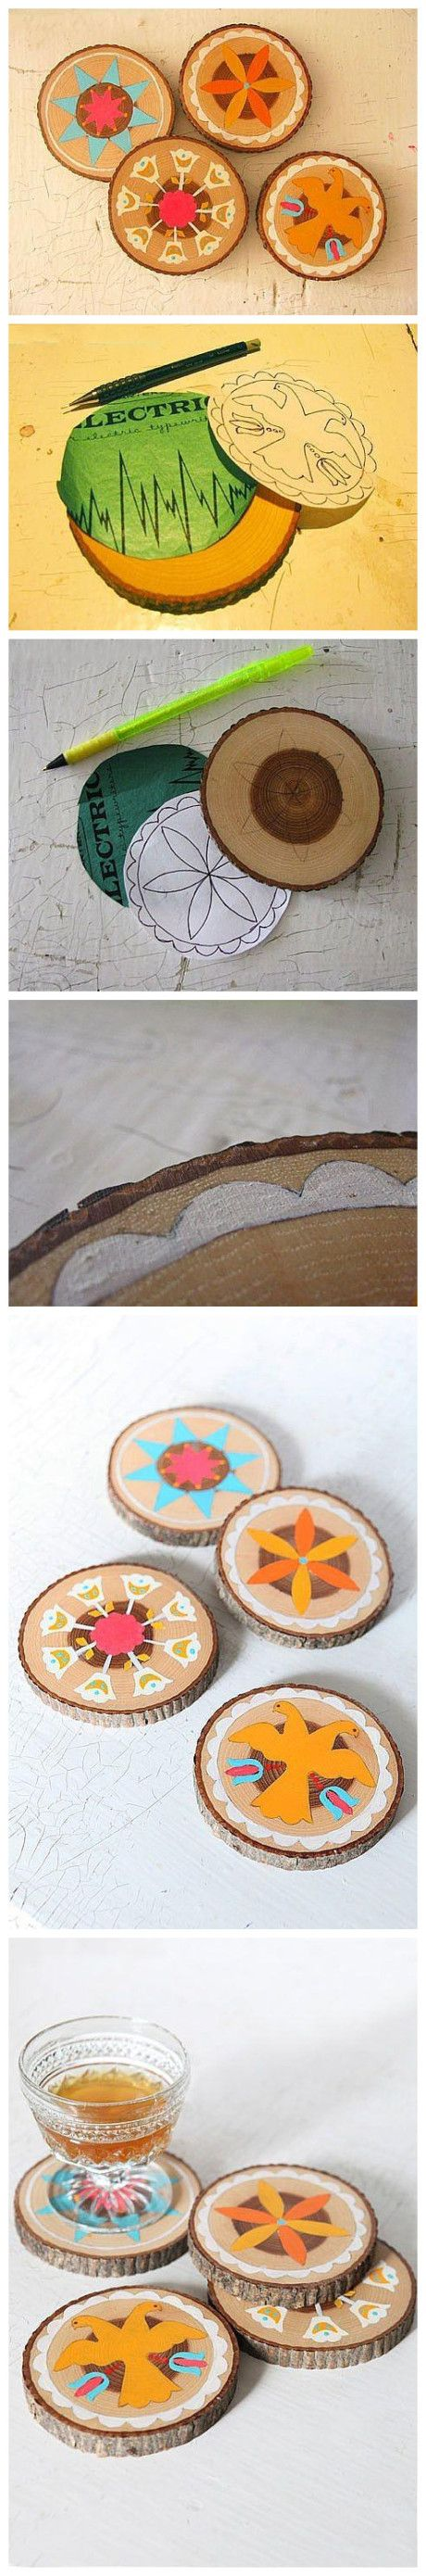 DIY hand-painted cup mat 7-19